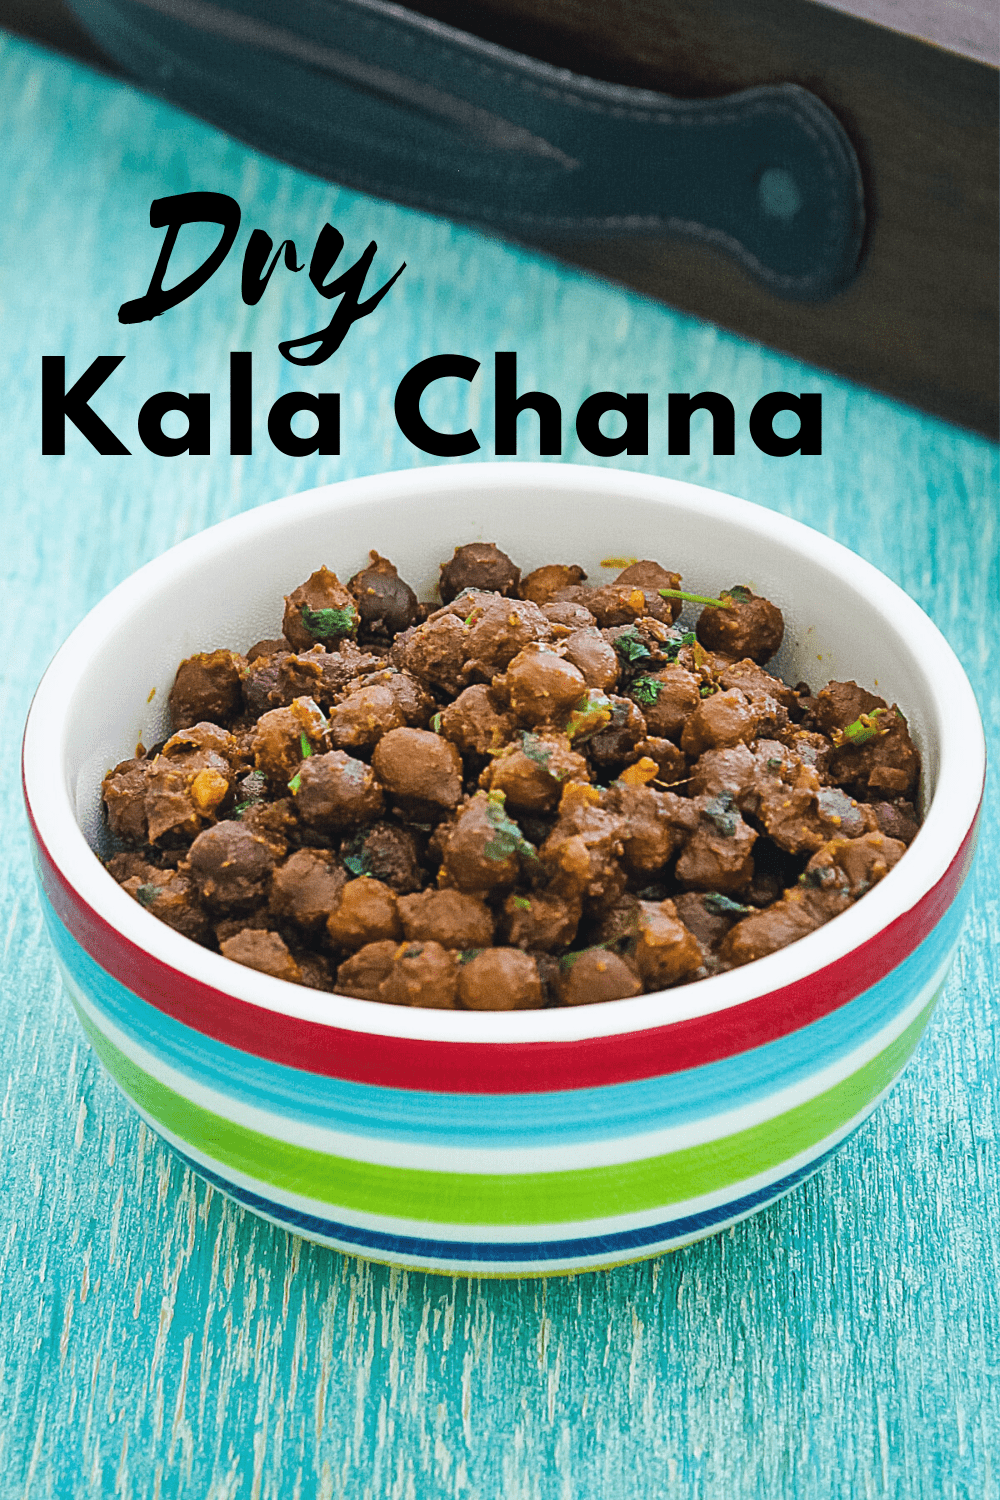 Dry kala chana in a bowl with text on the image for pinterest.